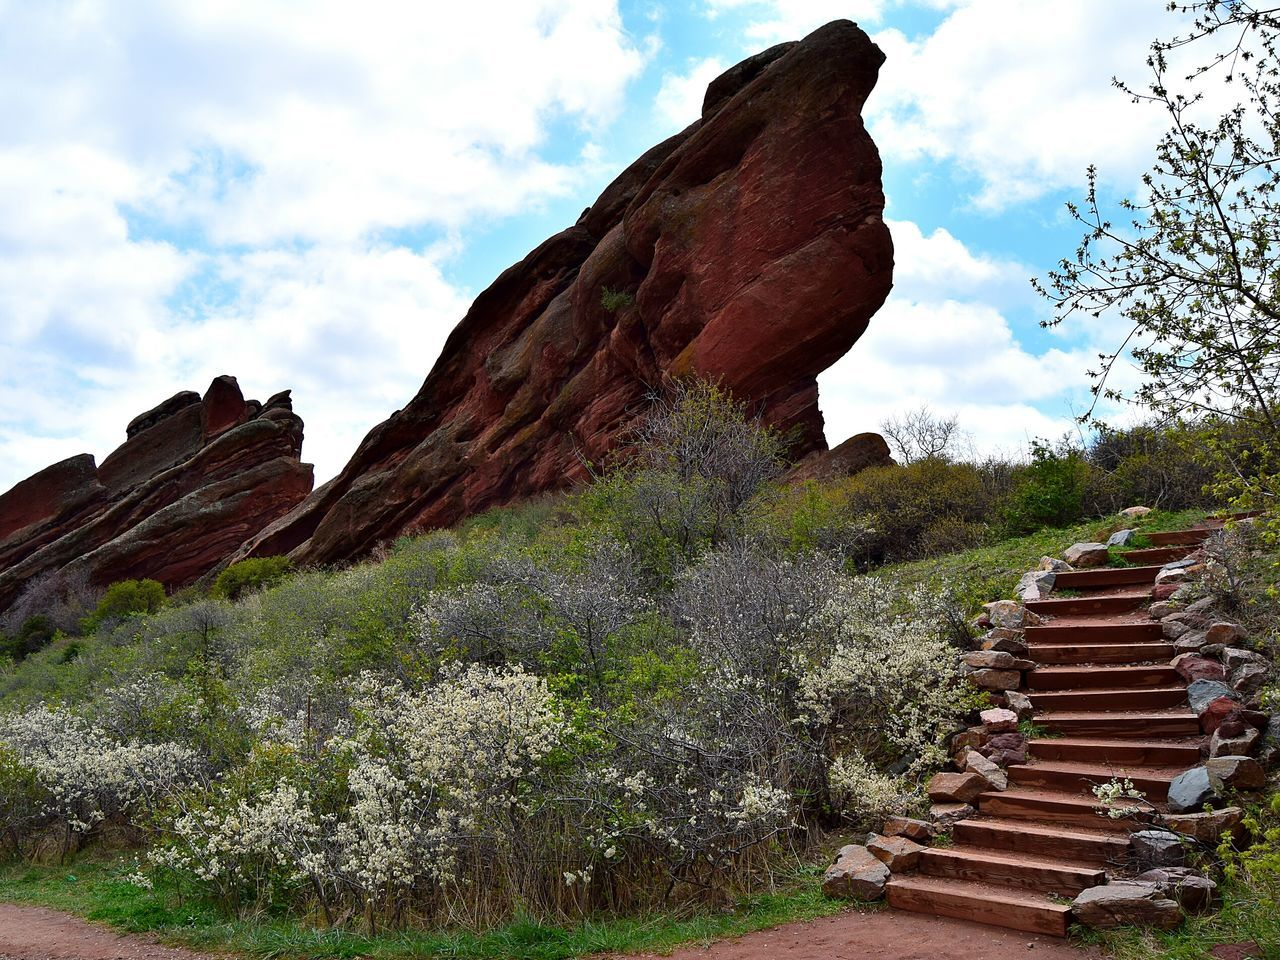 Steps And Plants By Rock Formations Against Cloudy Sky